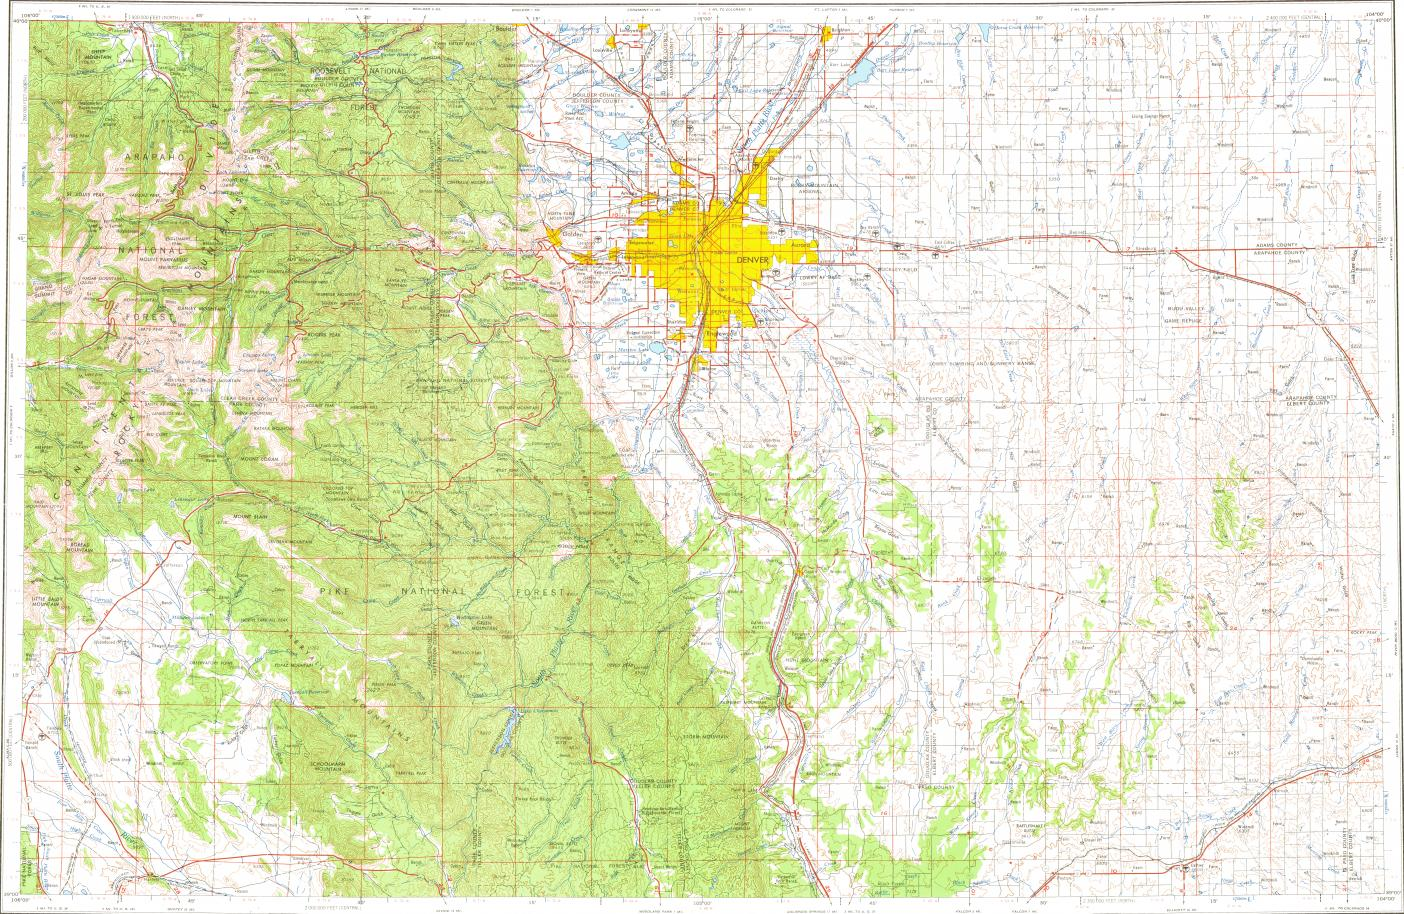 Download Topographic Map In Area Of Denver Aurora Lakewood